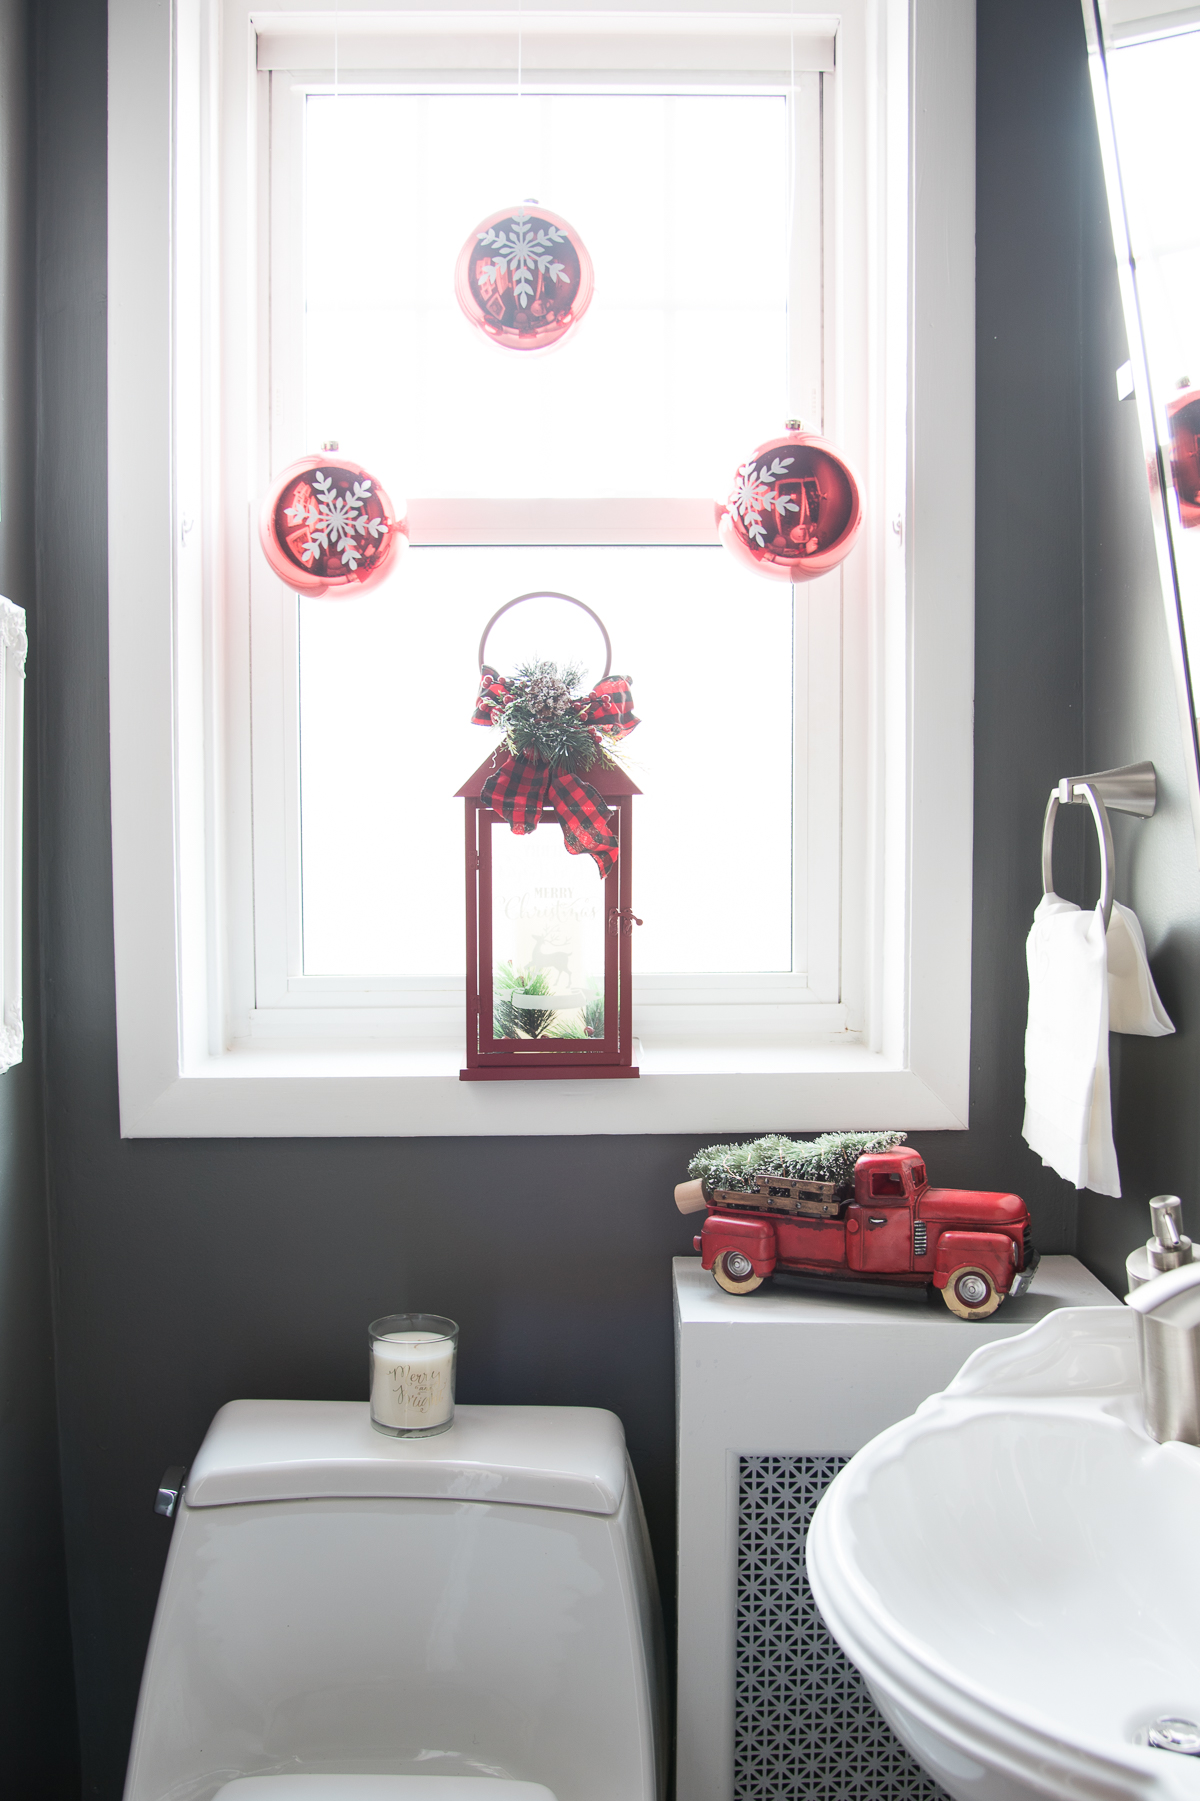 Powder Room Updates - Holiday Decorating - Home with Keki